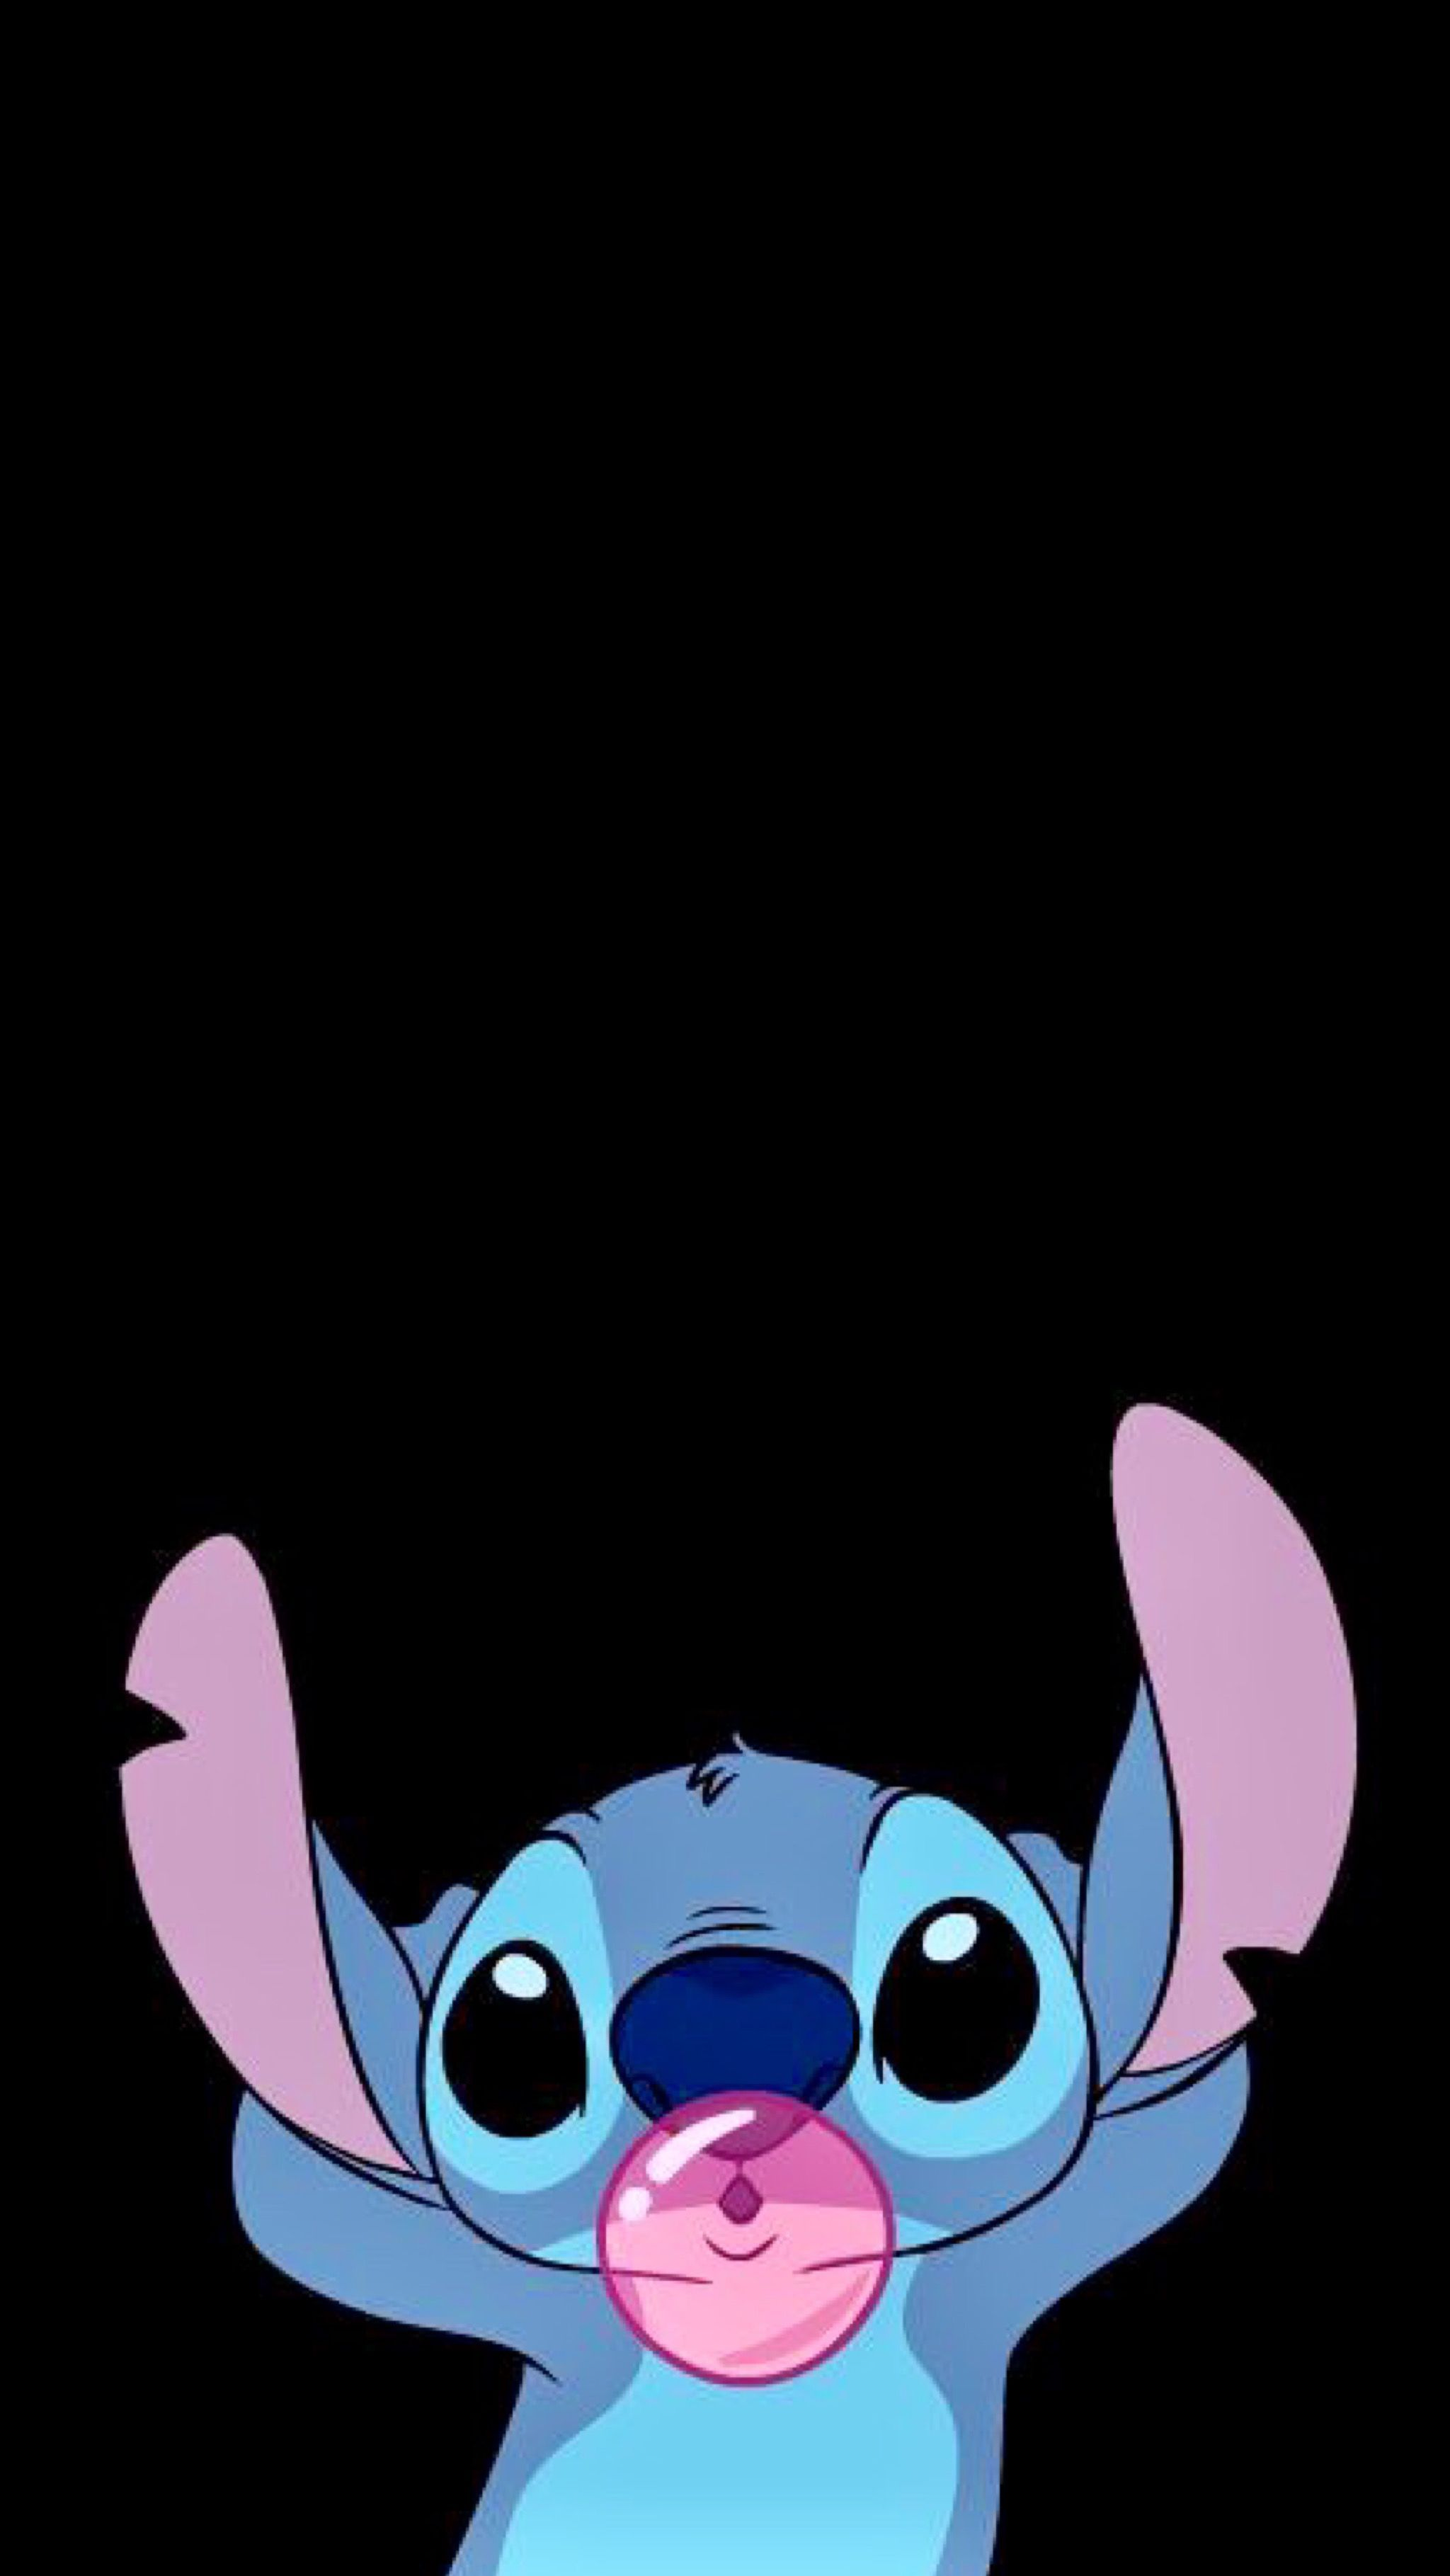 20 Cute Wallpaper Iphone Disney Stitch For Your Iphone V